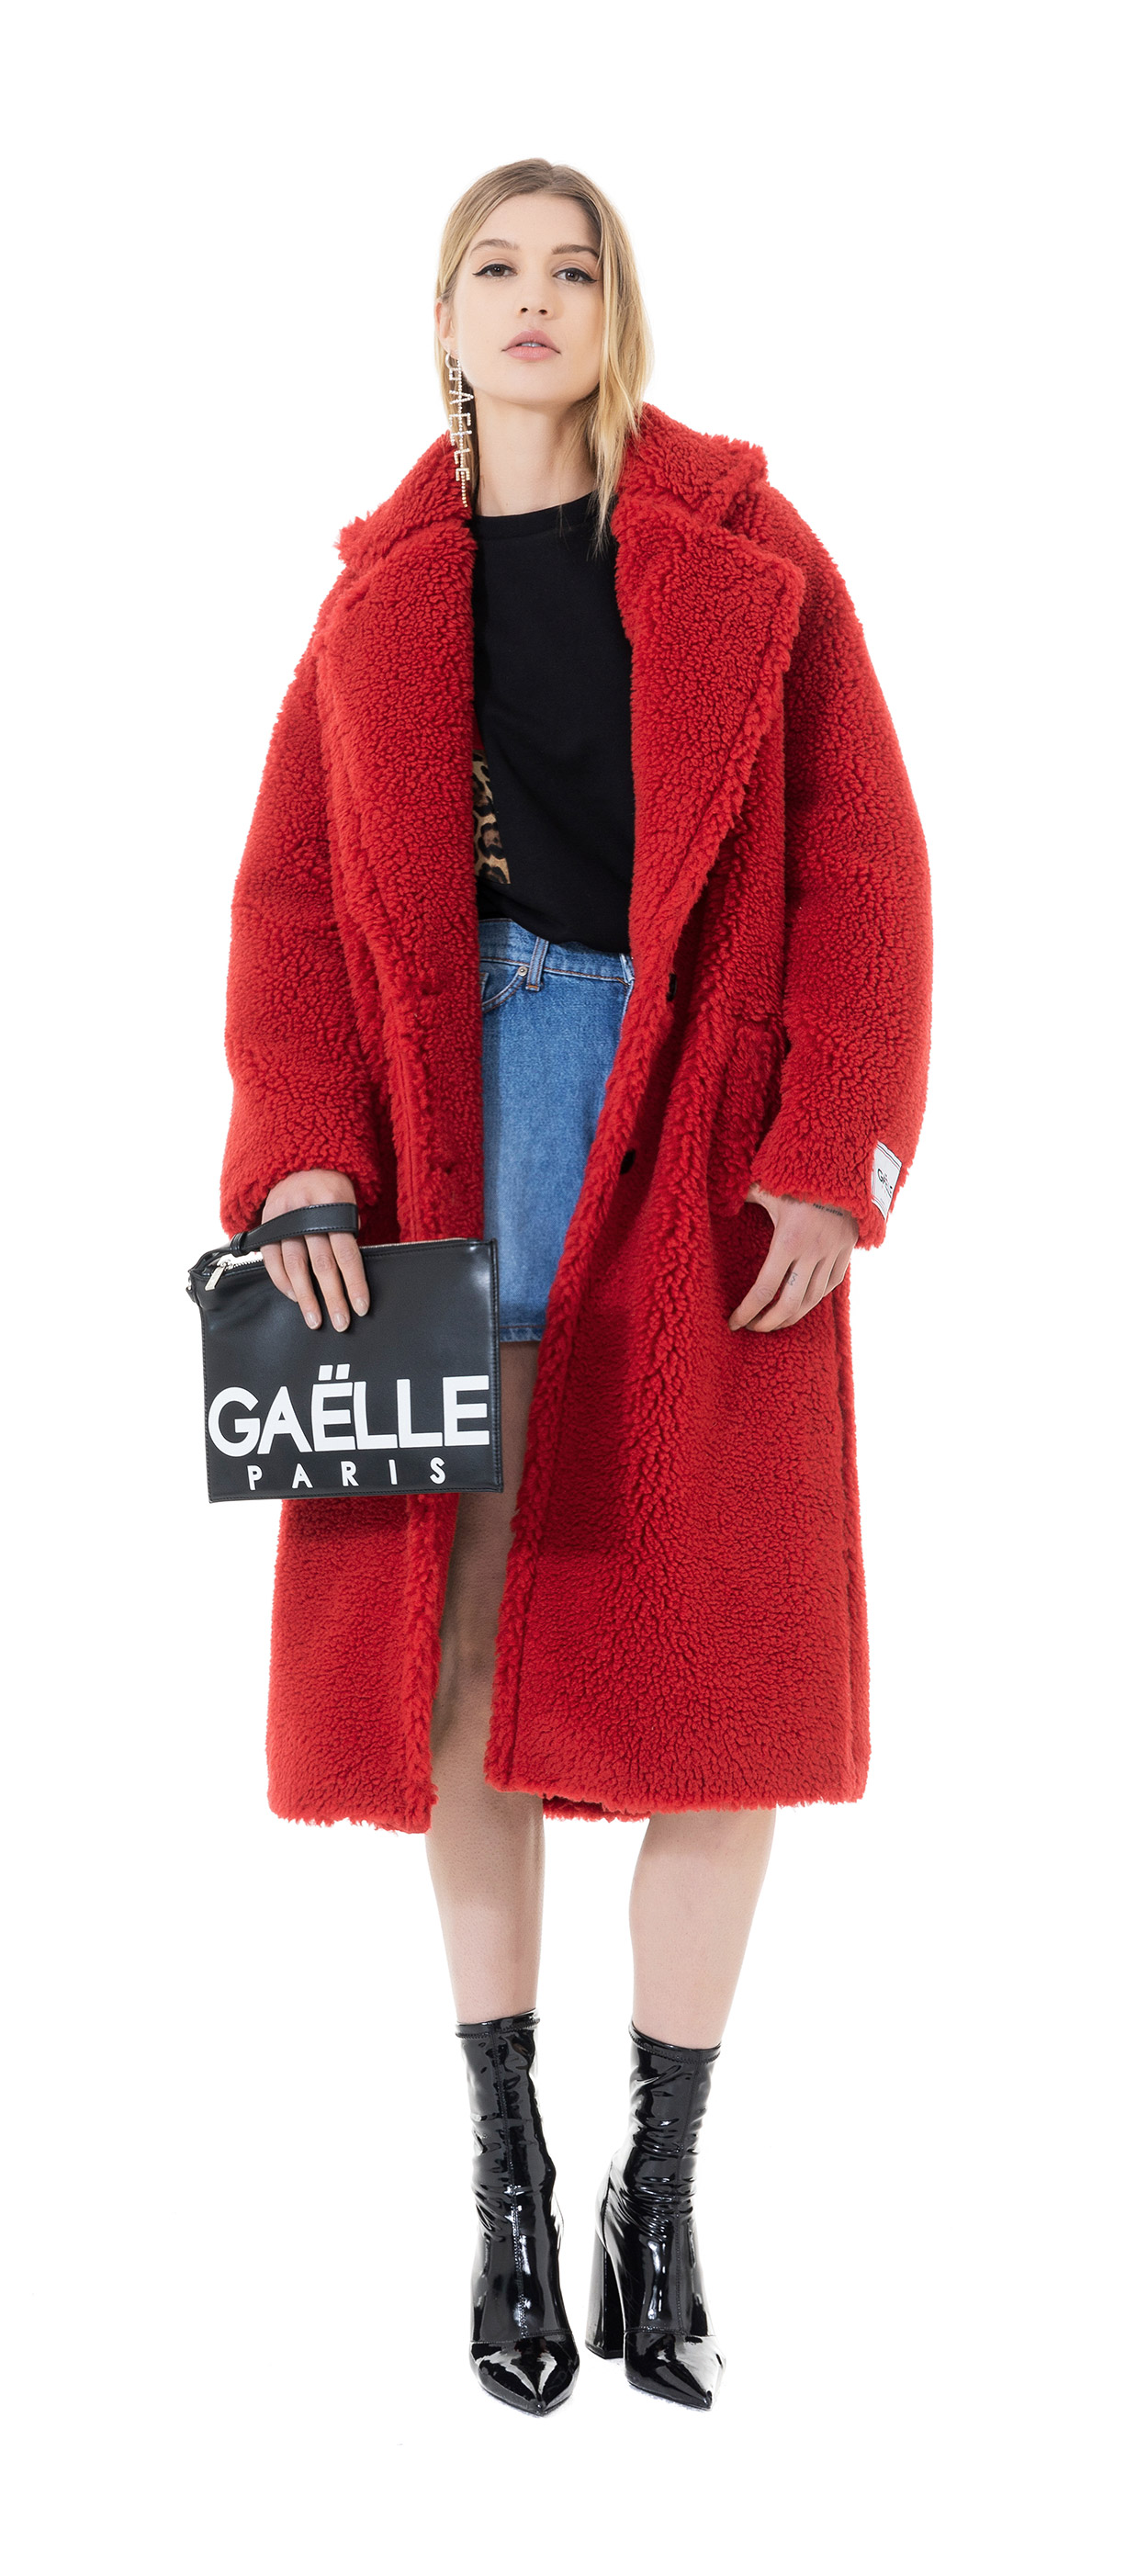 CAPPOTTO - GBD4940 - GAELLE PARIS